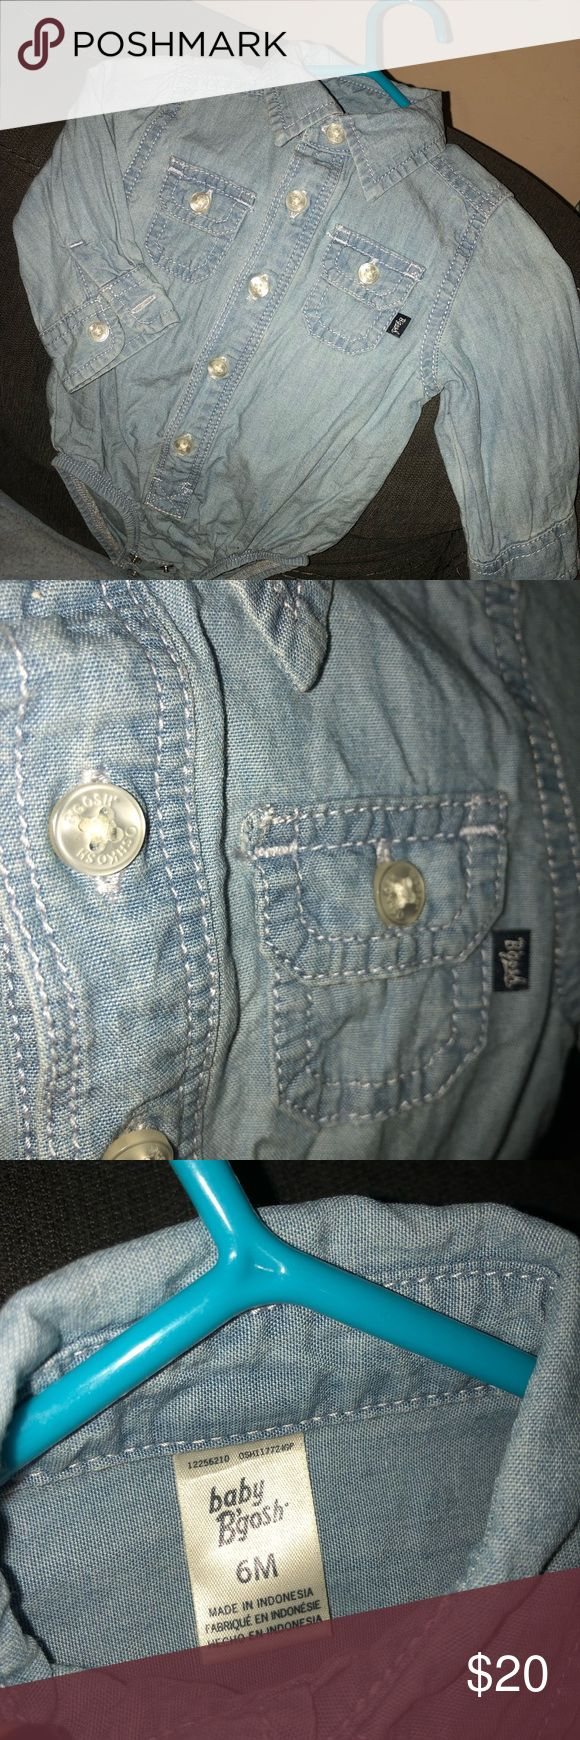 Baby Denim Body Suit Baby denim body suit Only worn once, like new 100% cotton GAP Shirts & Tops Button Down Shirts